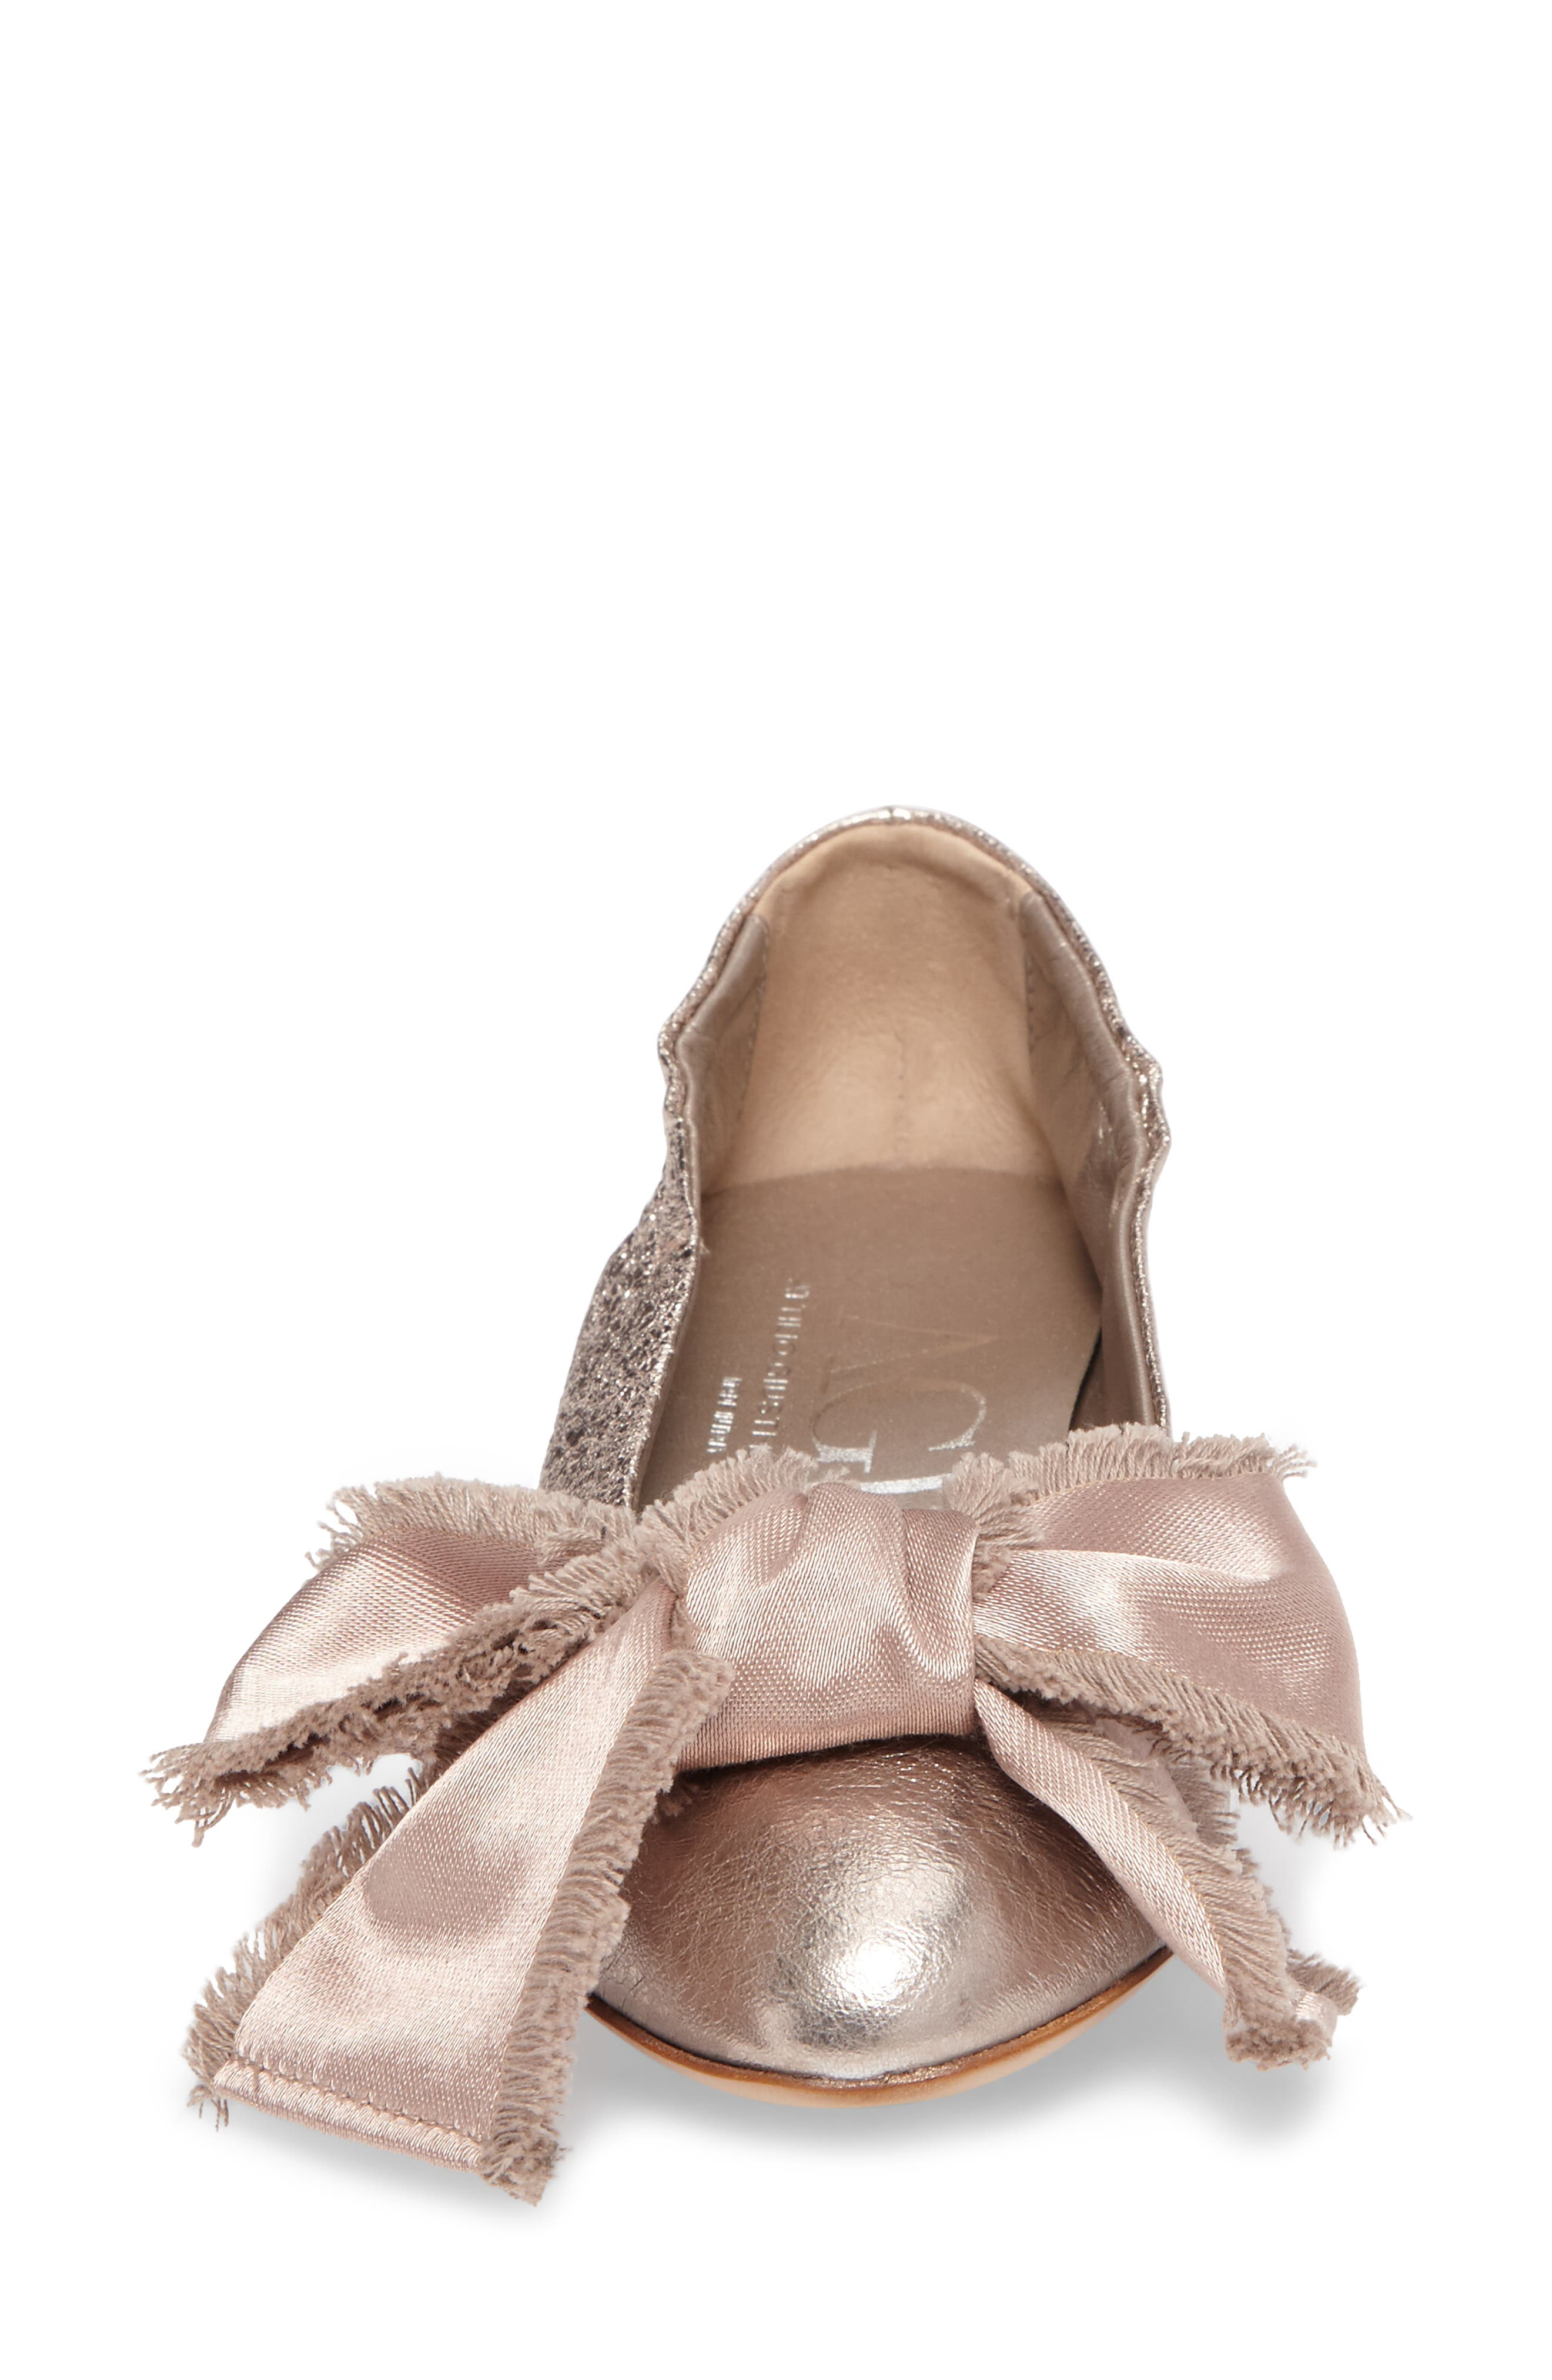 Satin Bow Ballet Flat,                             Alternate thumbnail 5, color,                             Pink Leather